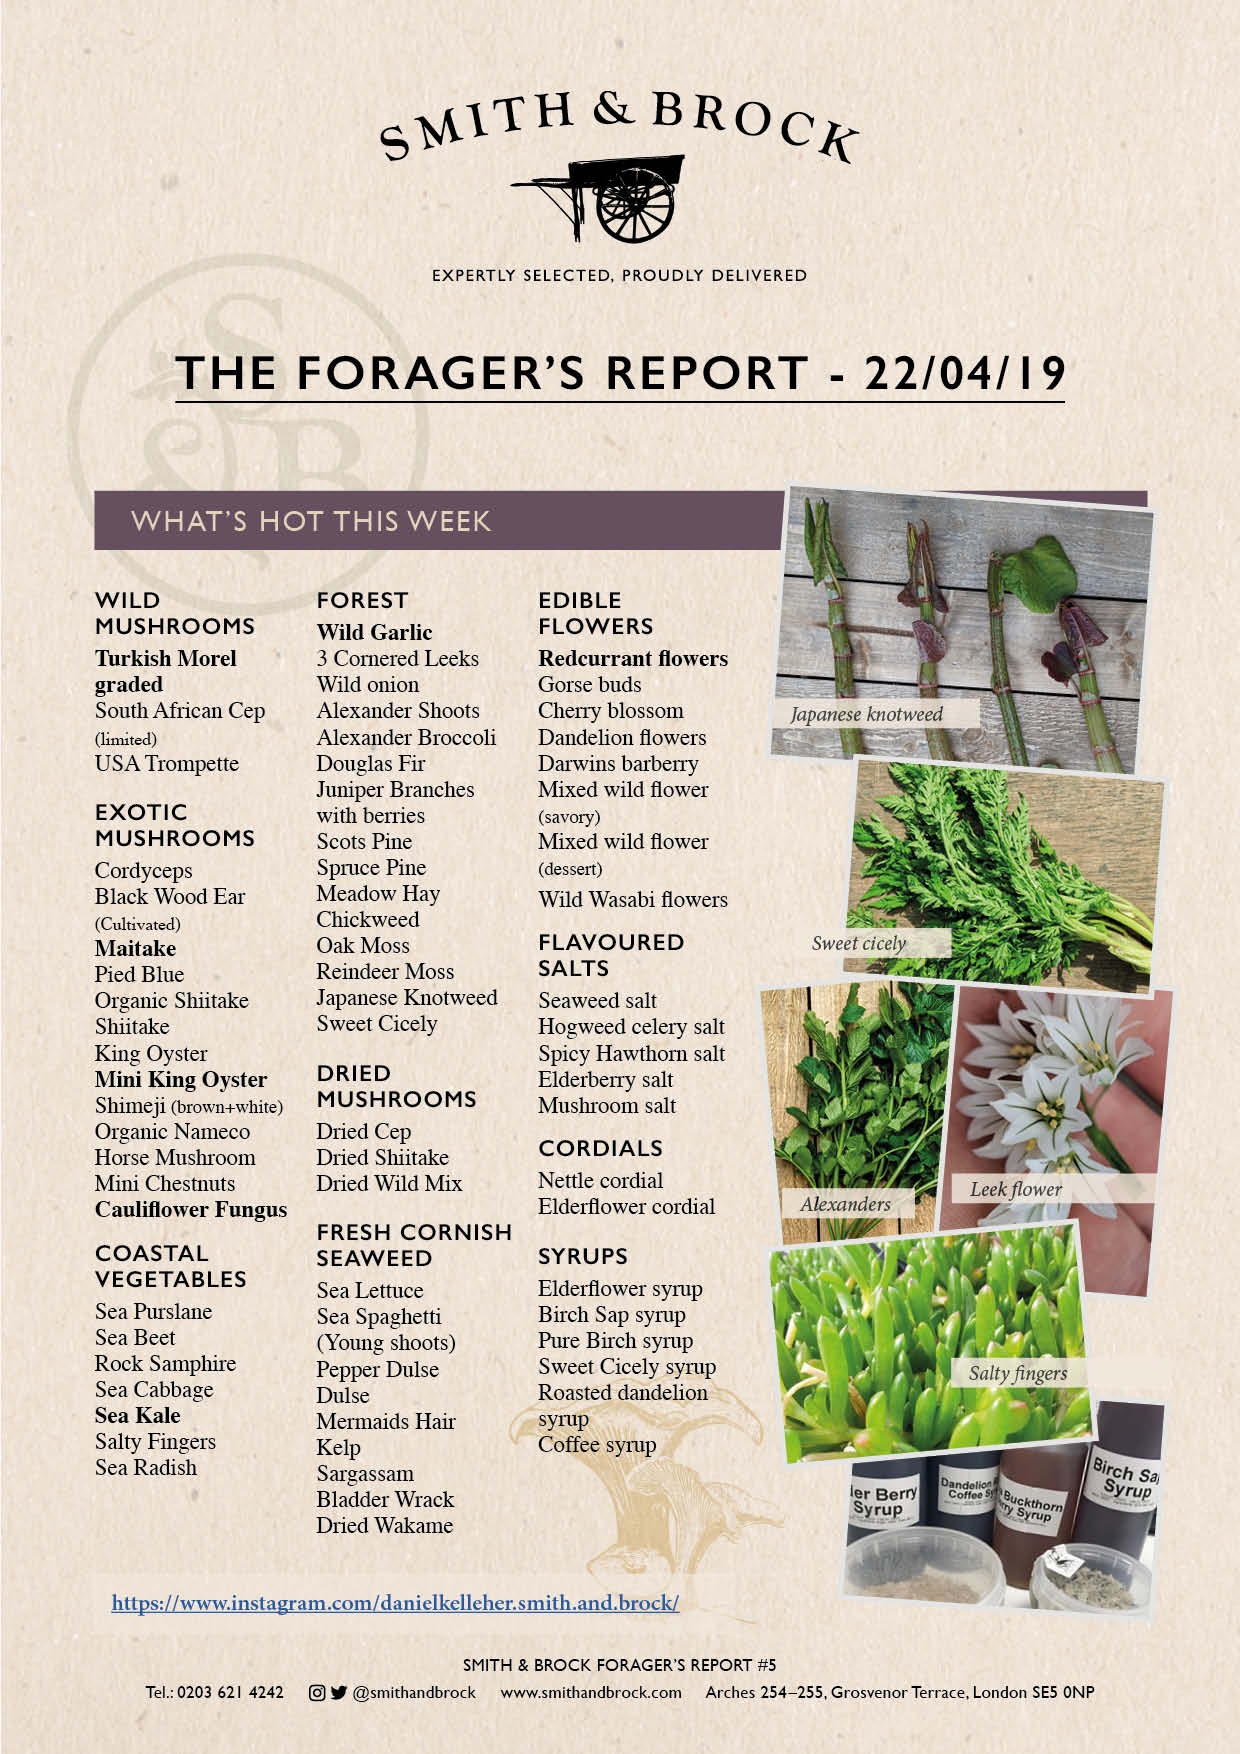 Smith&Brock Foraged Products Report 22 Apr 2019 5